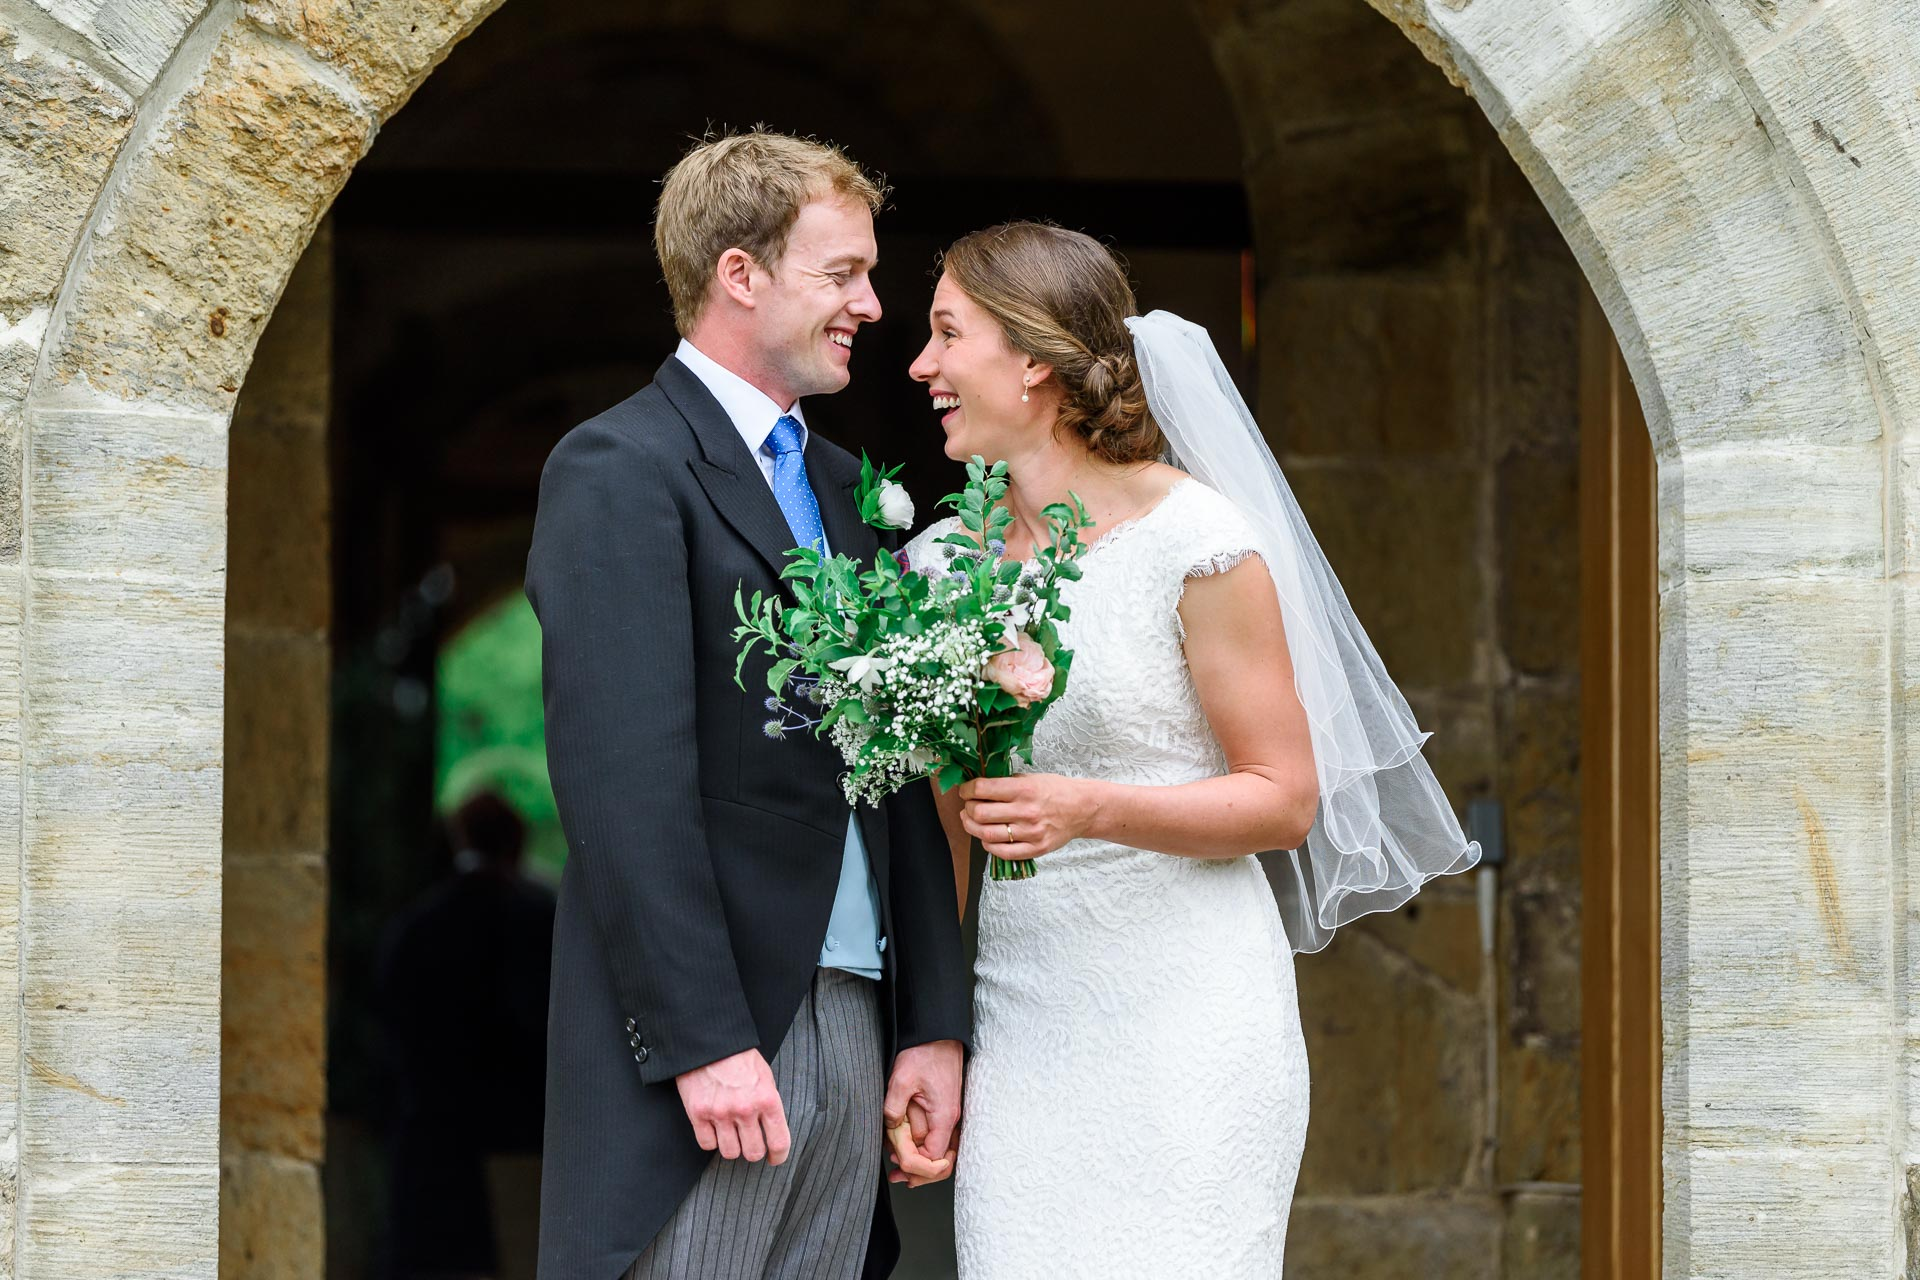 An image of a just married couple on their wedding day - wedding day photography by Sam of Hansford Carter, a Kent-based wedding photographer